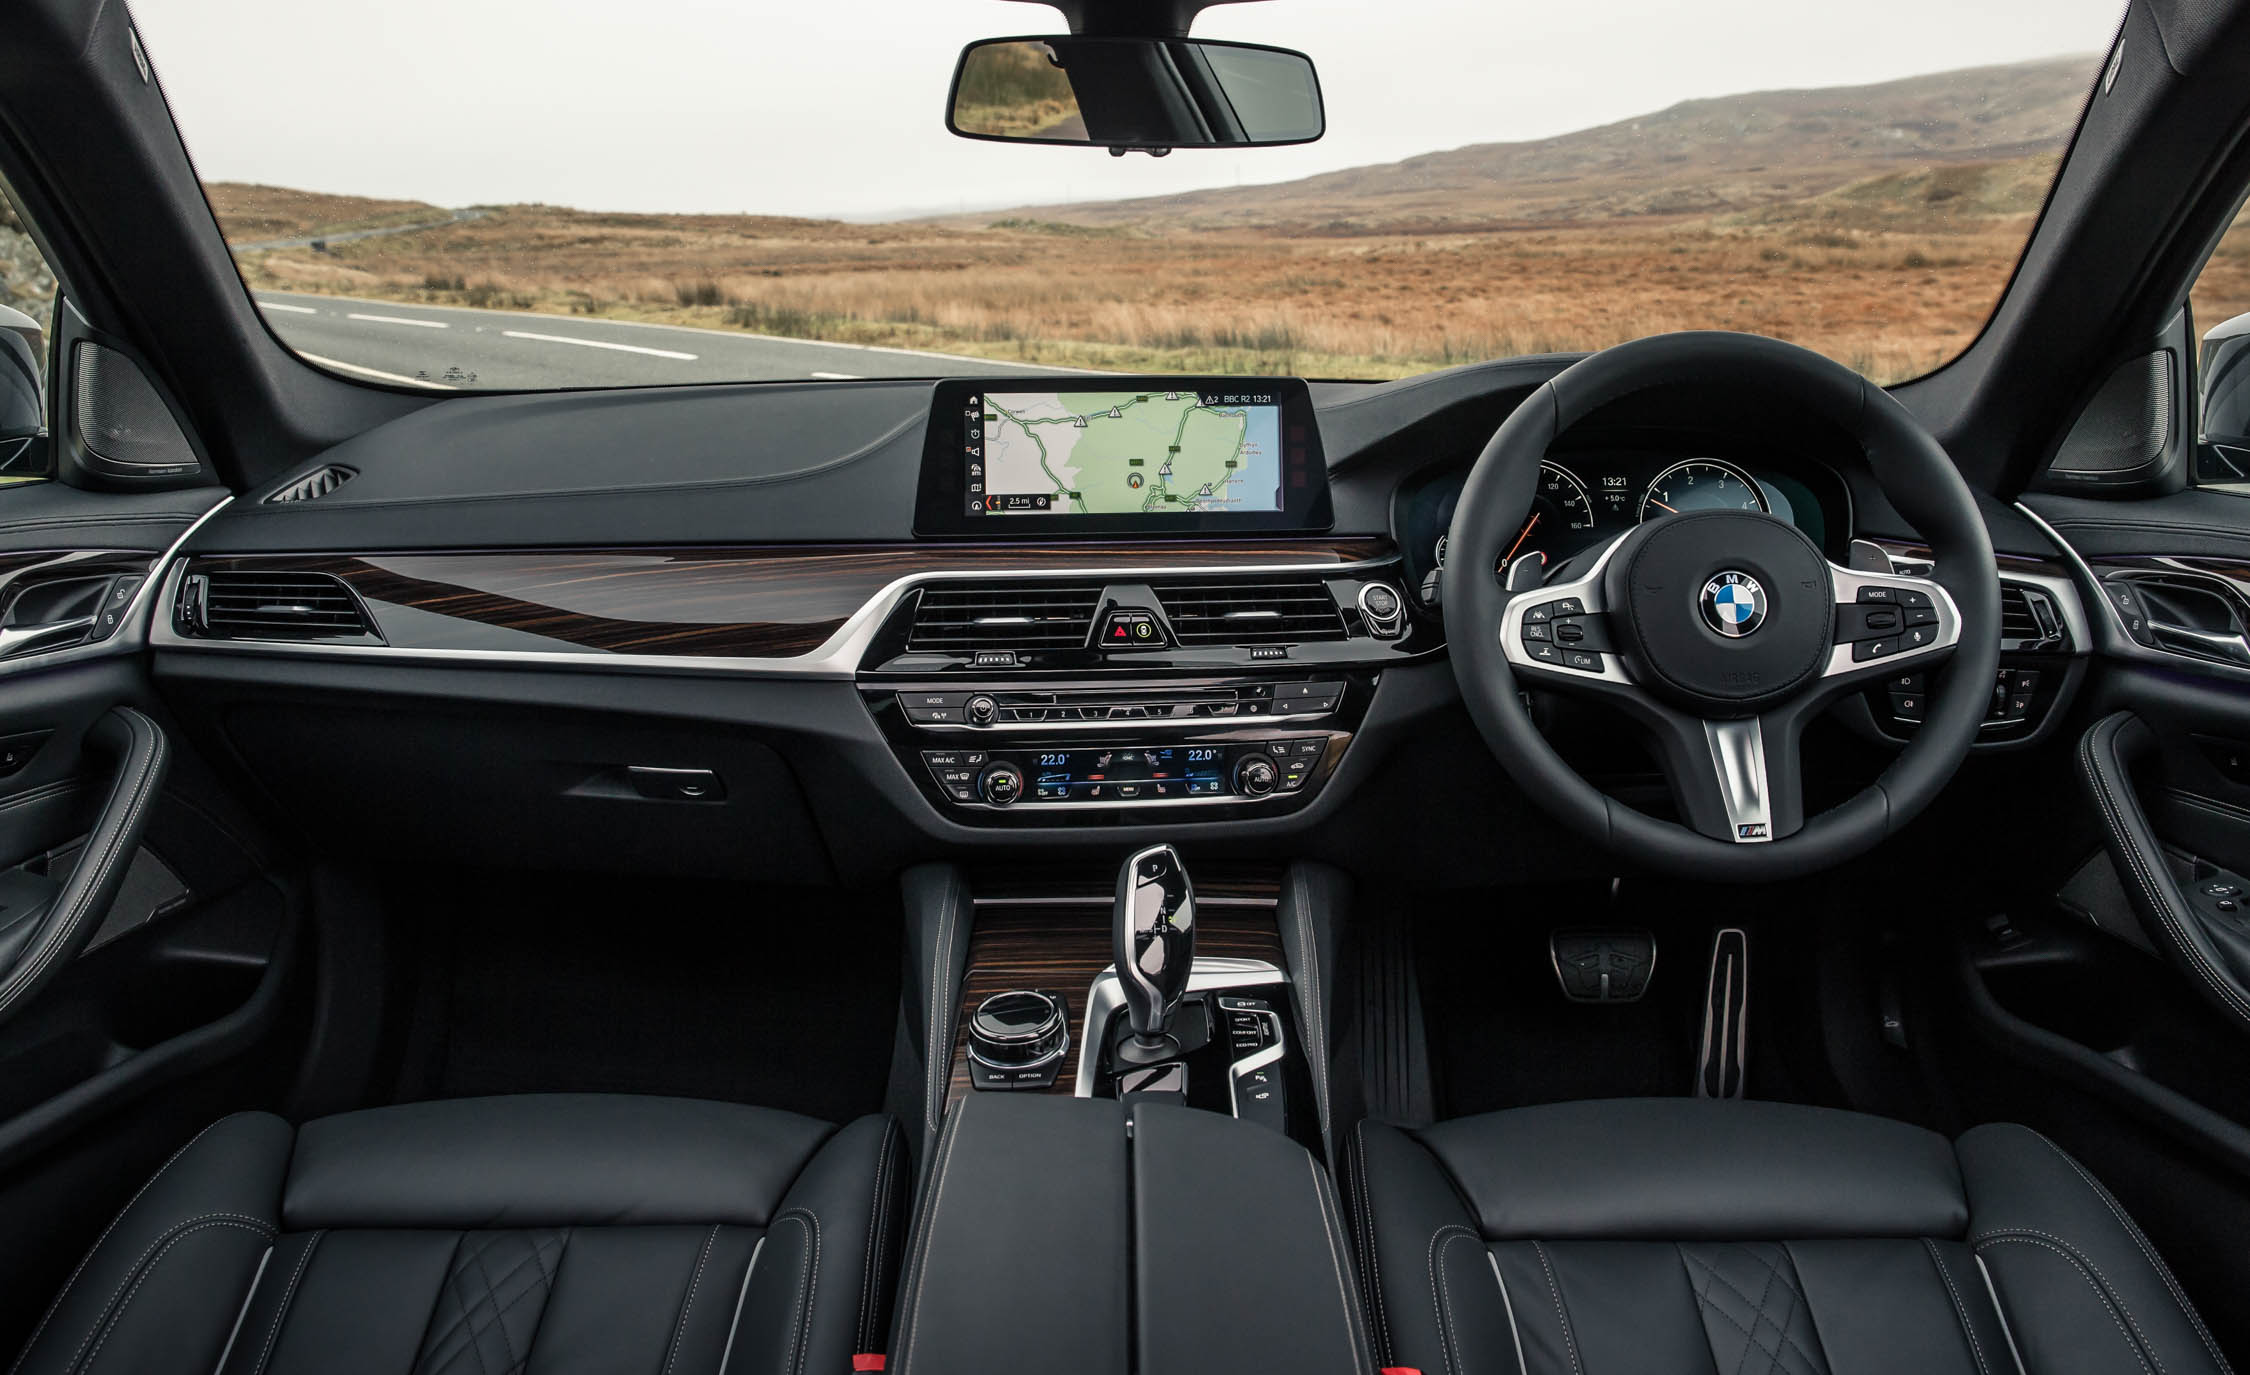 2017 BMW 530d Interior Dashboard (Photo 30 of 32)